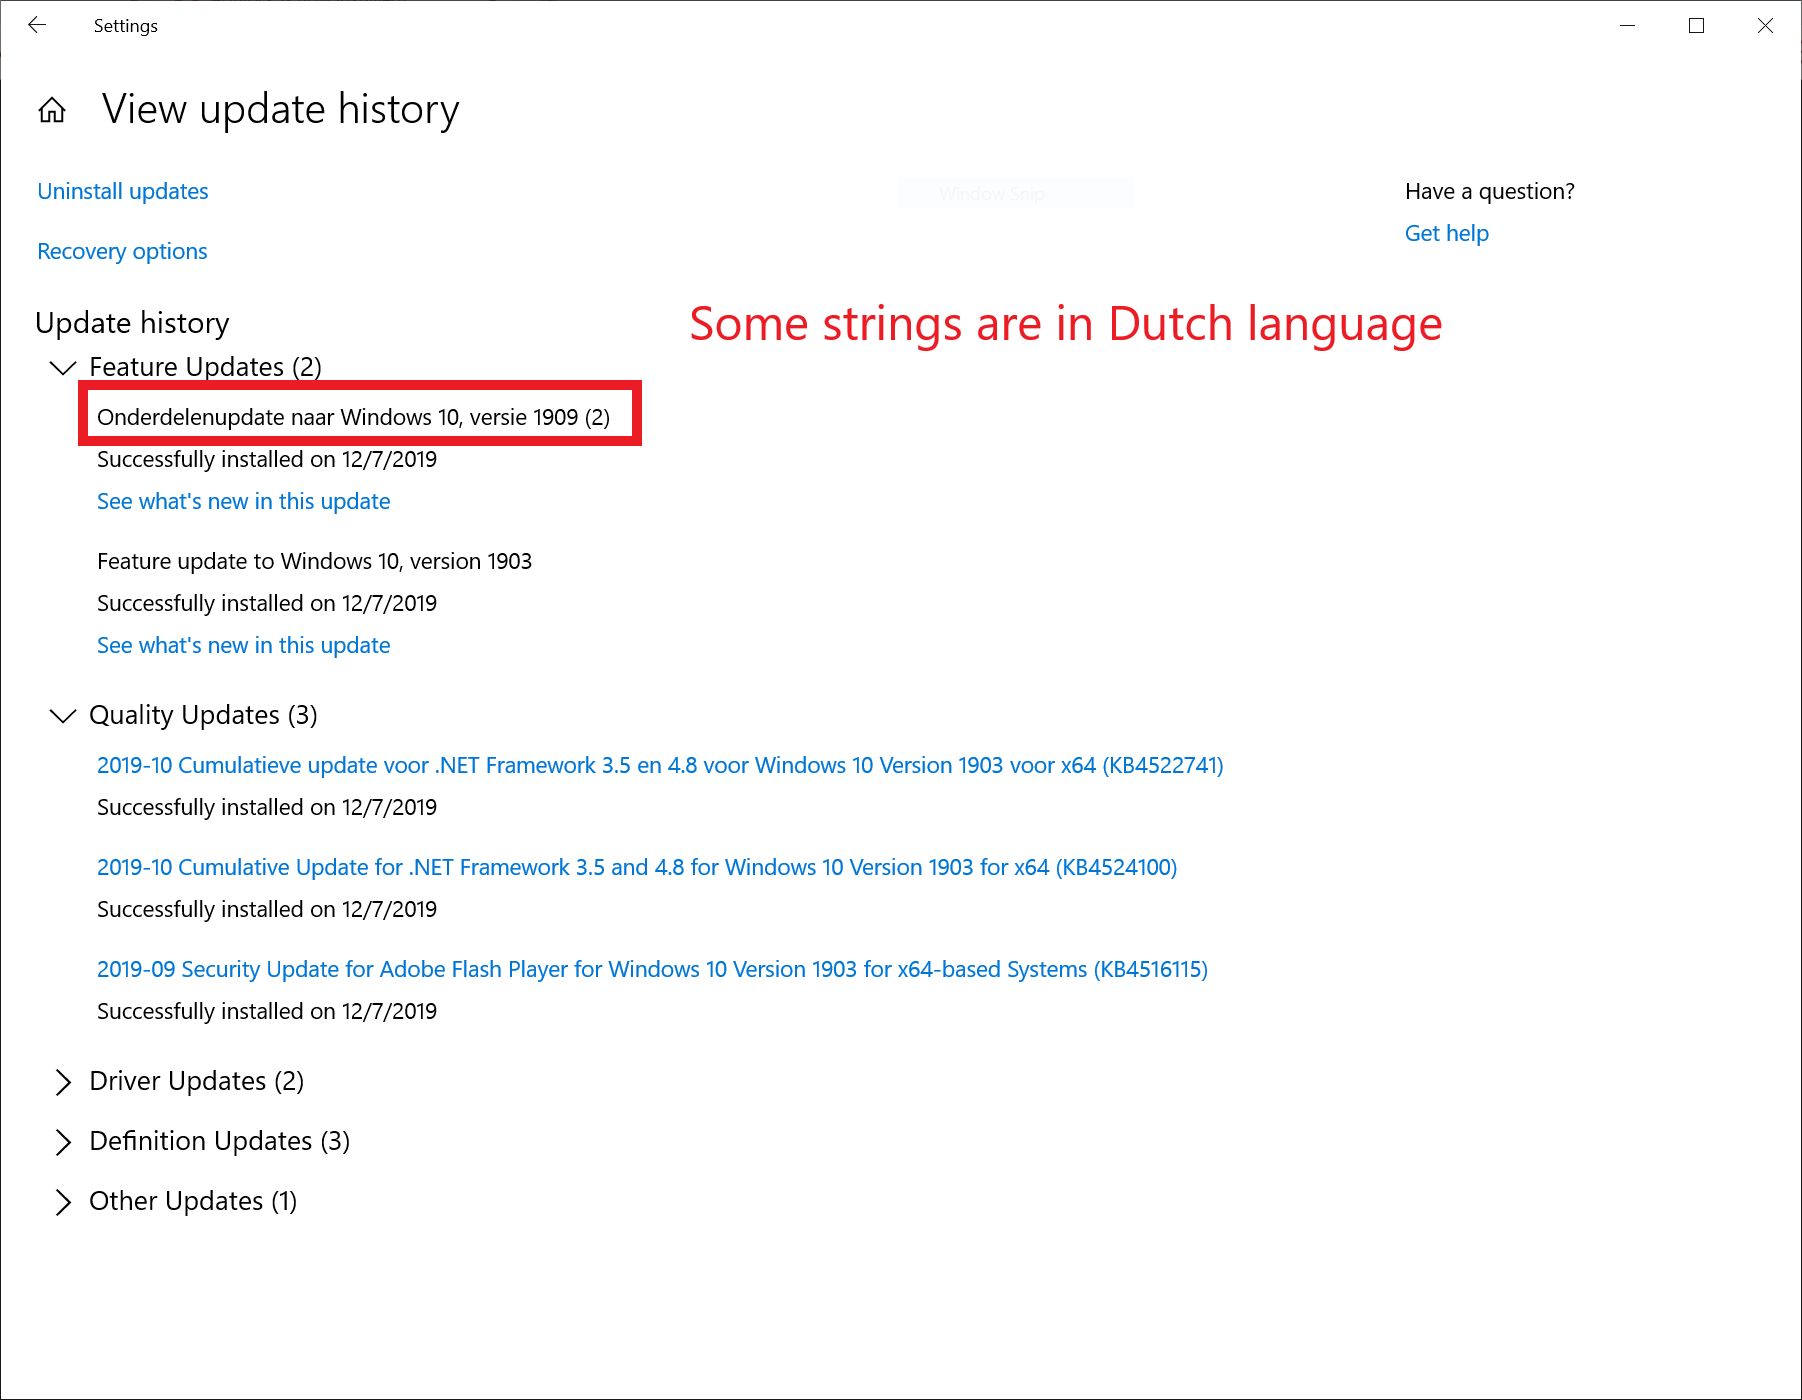 Potential Bug - Windows 10/1909 showing some Dutch strings in OS UI despite language being... cd86c34d-daf8-40e0-a5e7-9a65131d1ecd?upload=true.png